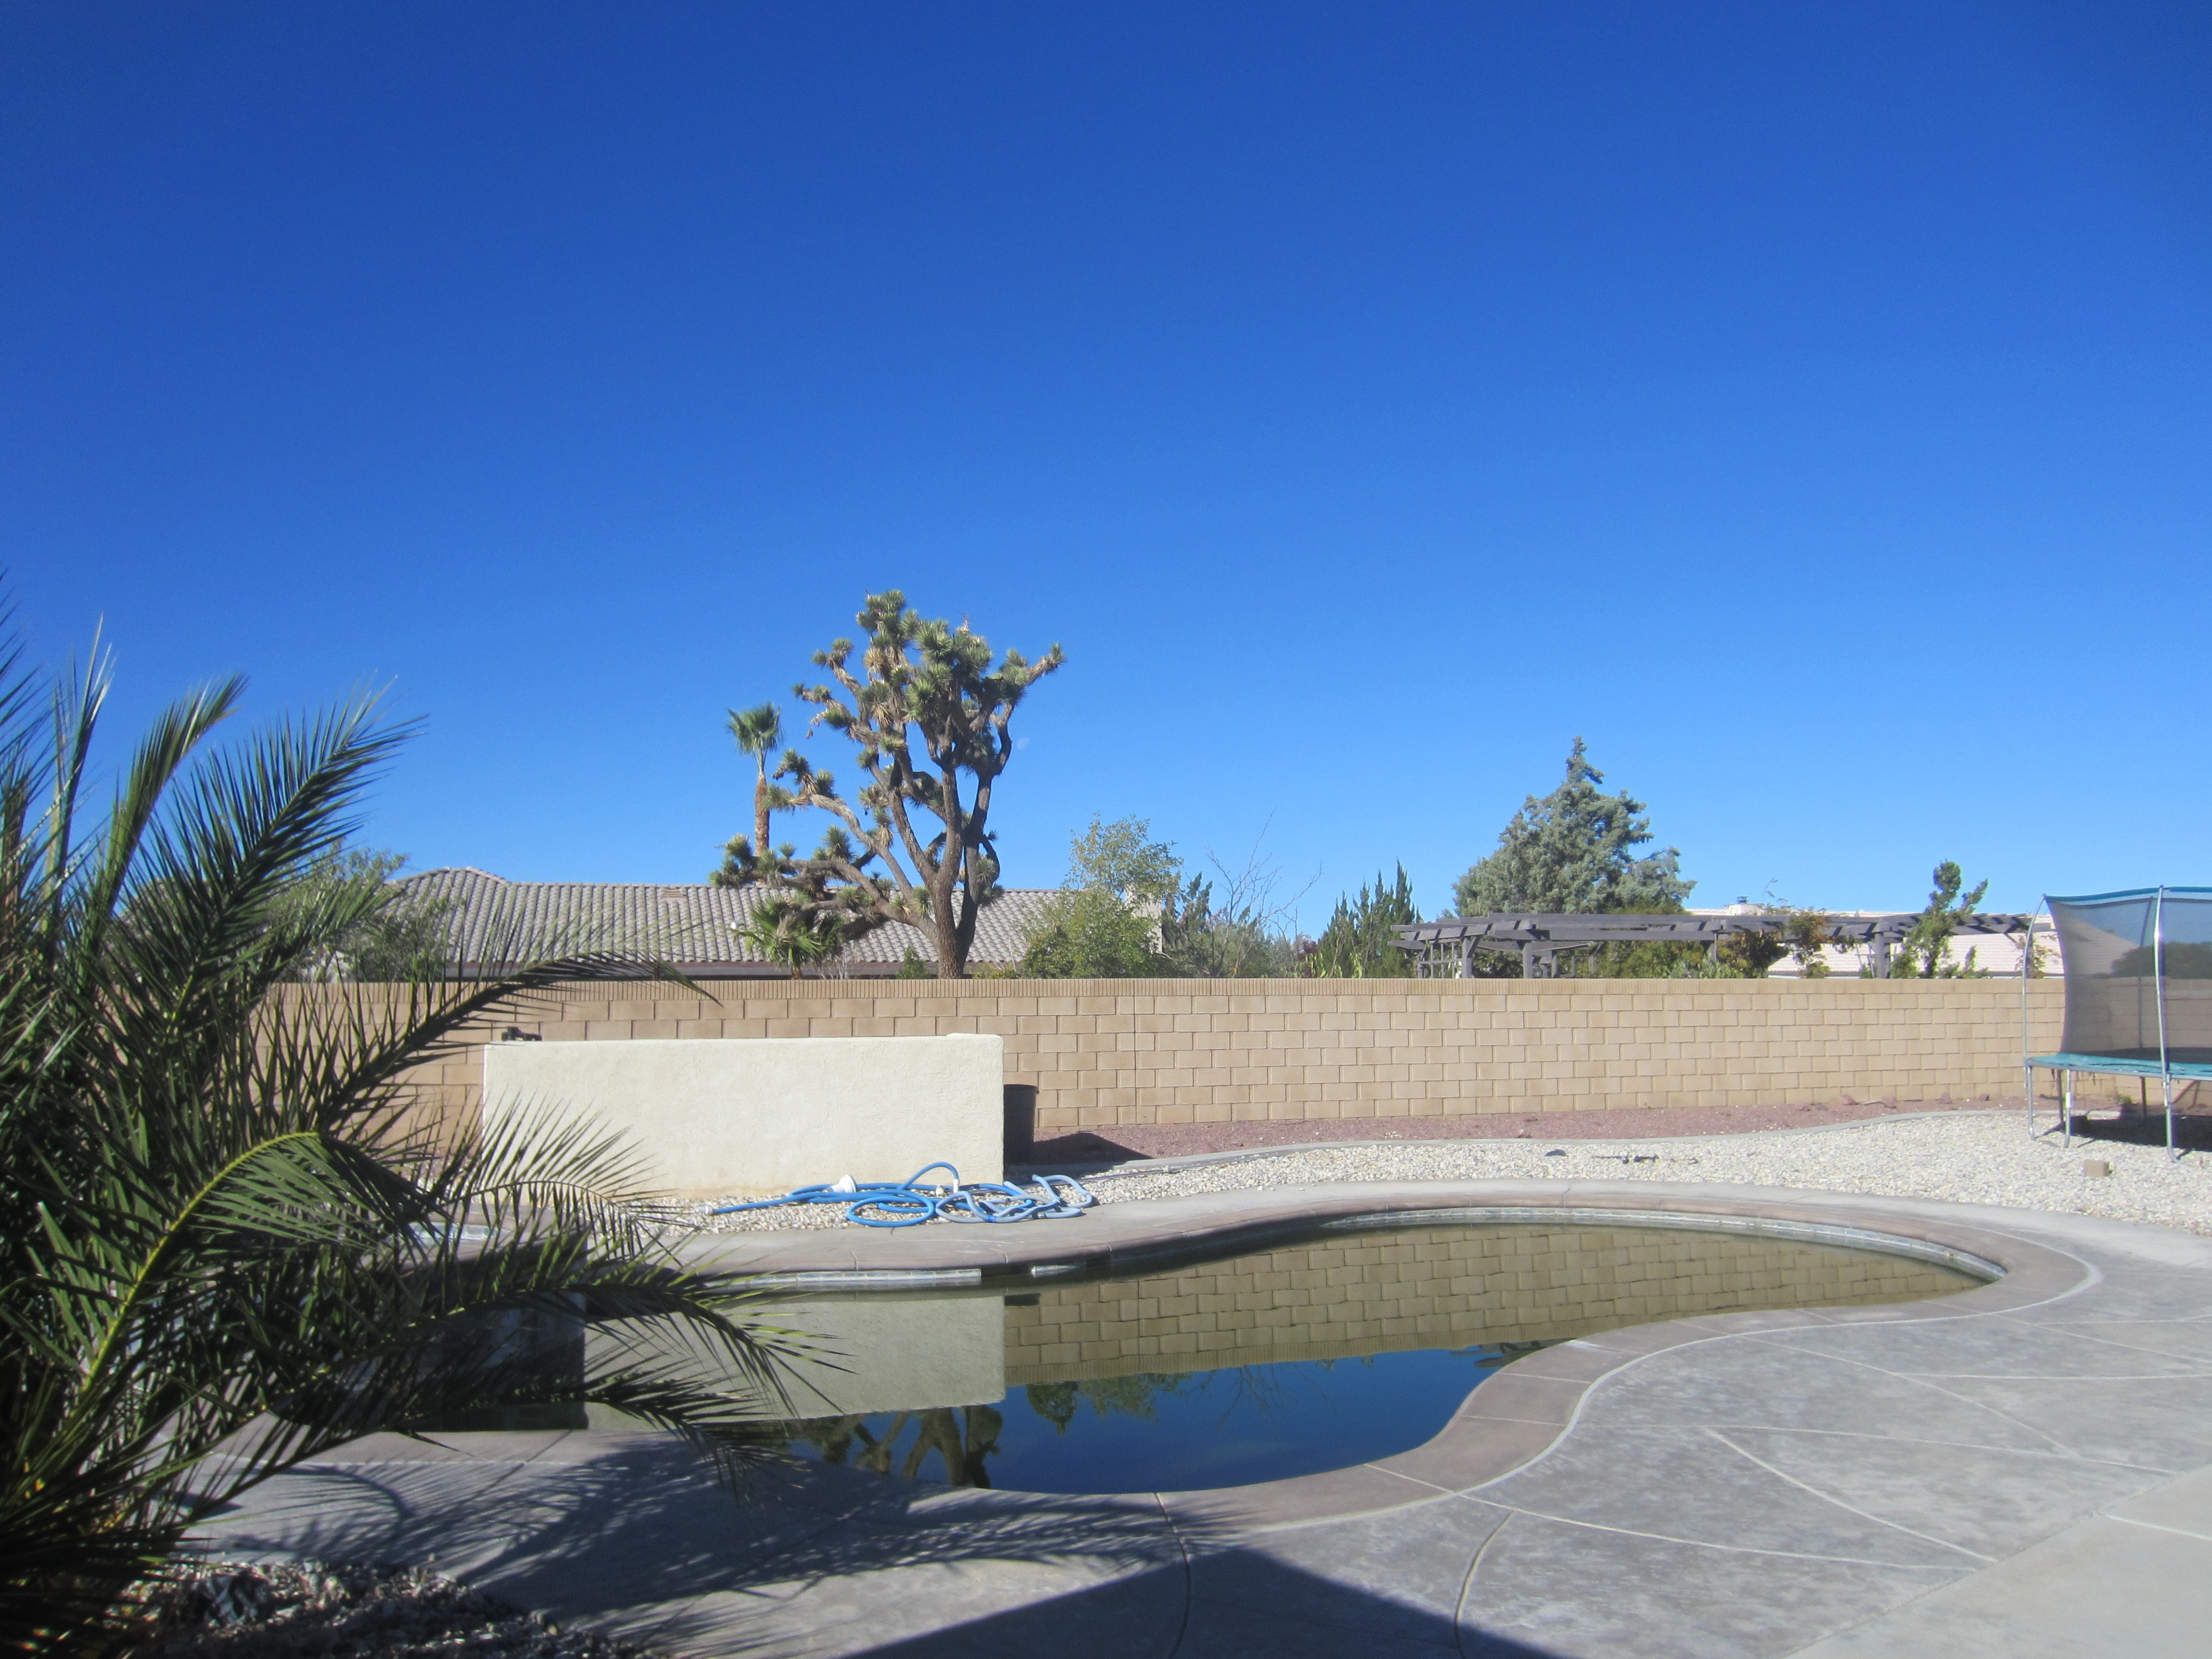 Skyline ranch pool home for sale apple valley ca - Swimming pool contractors apple valley ca ...